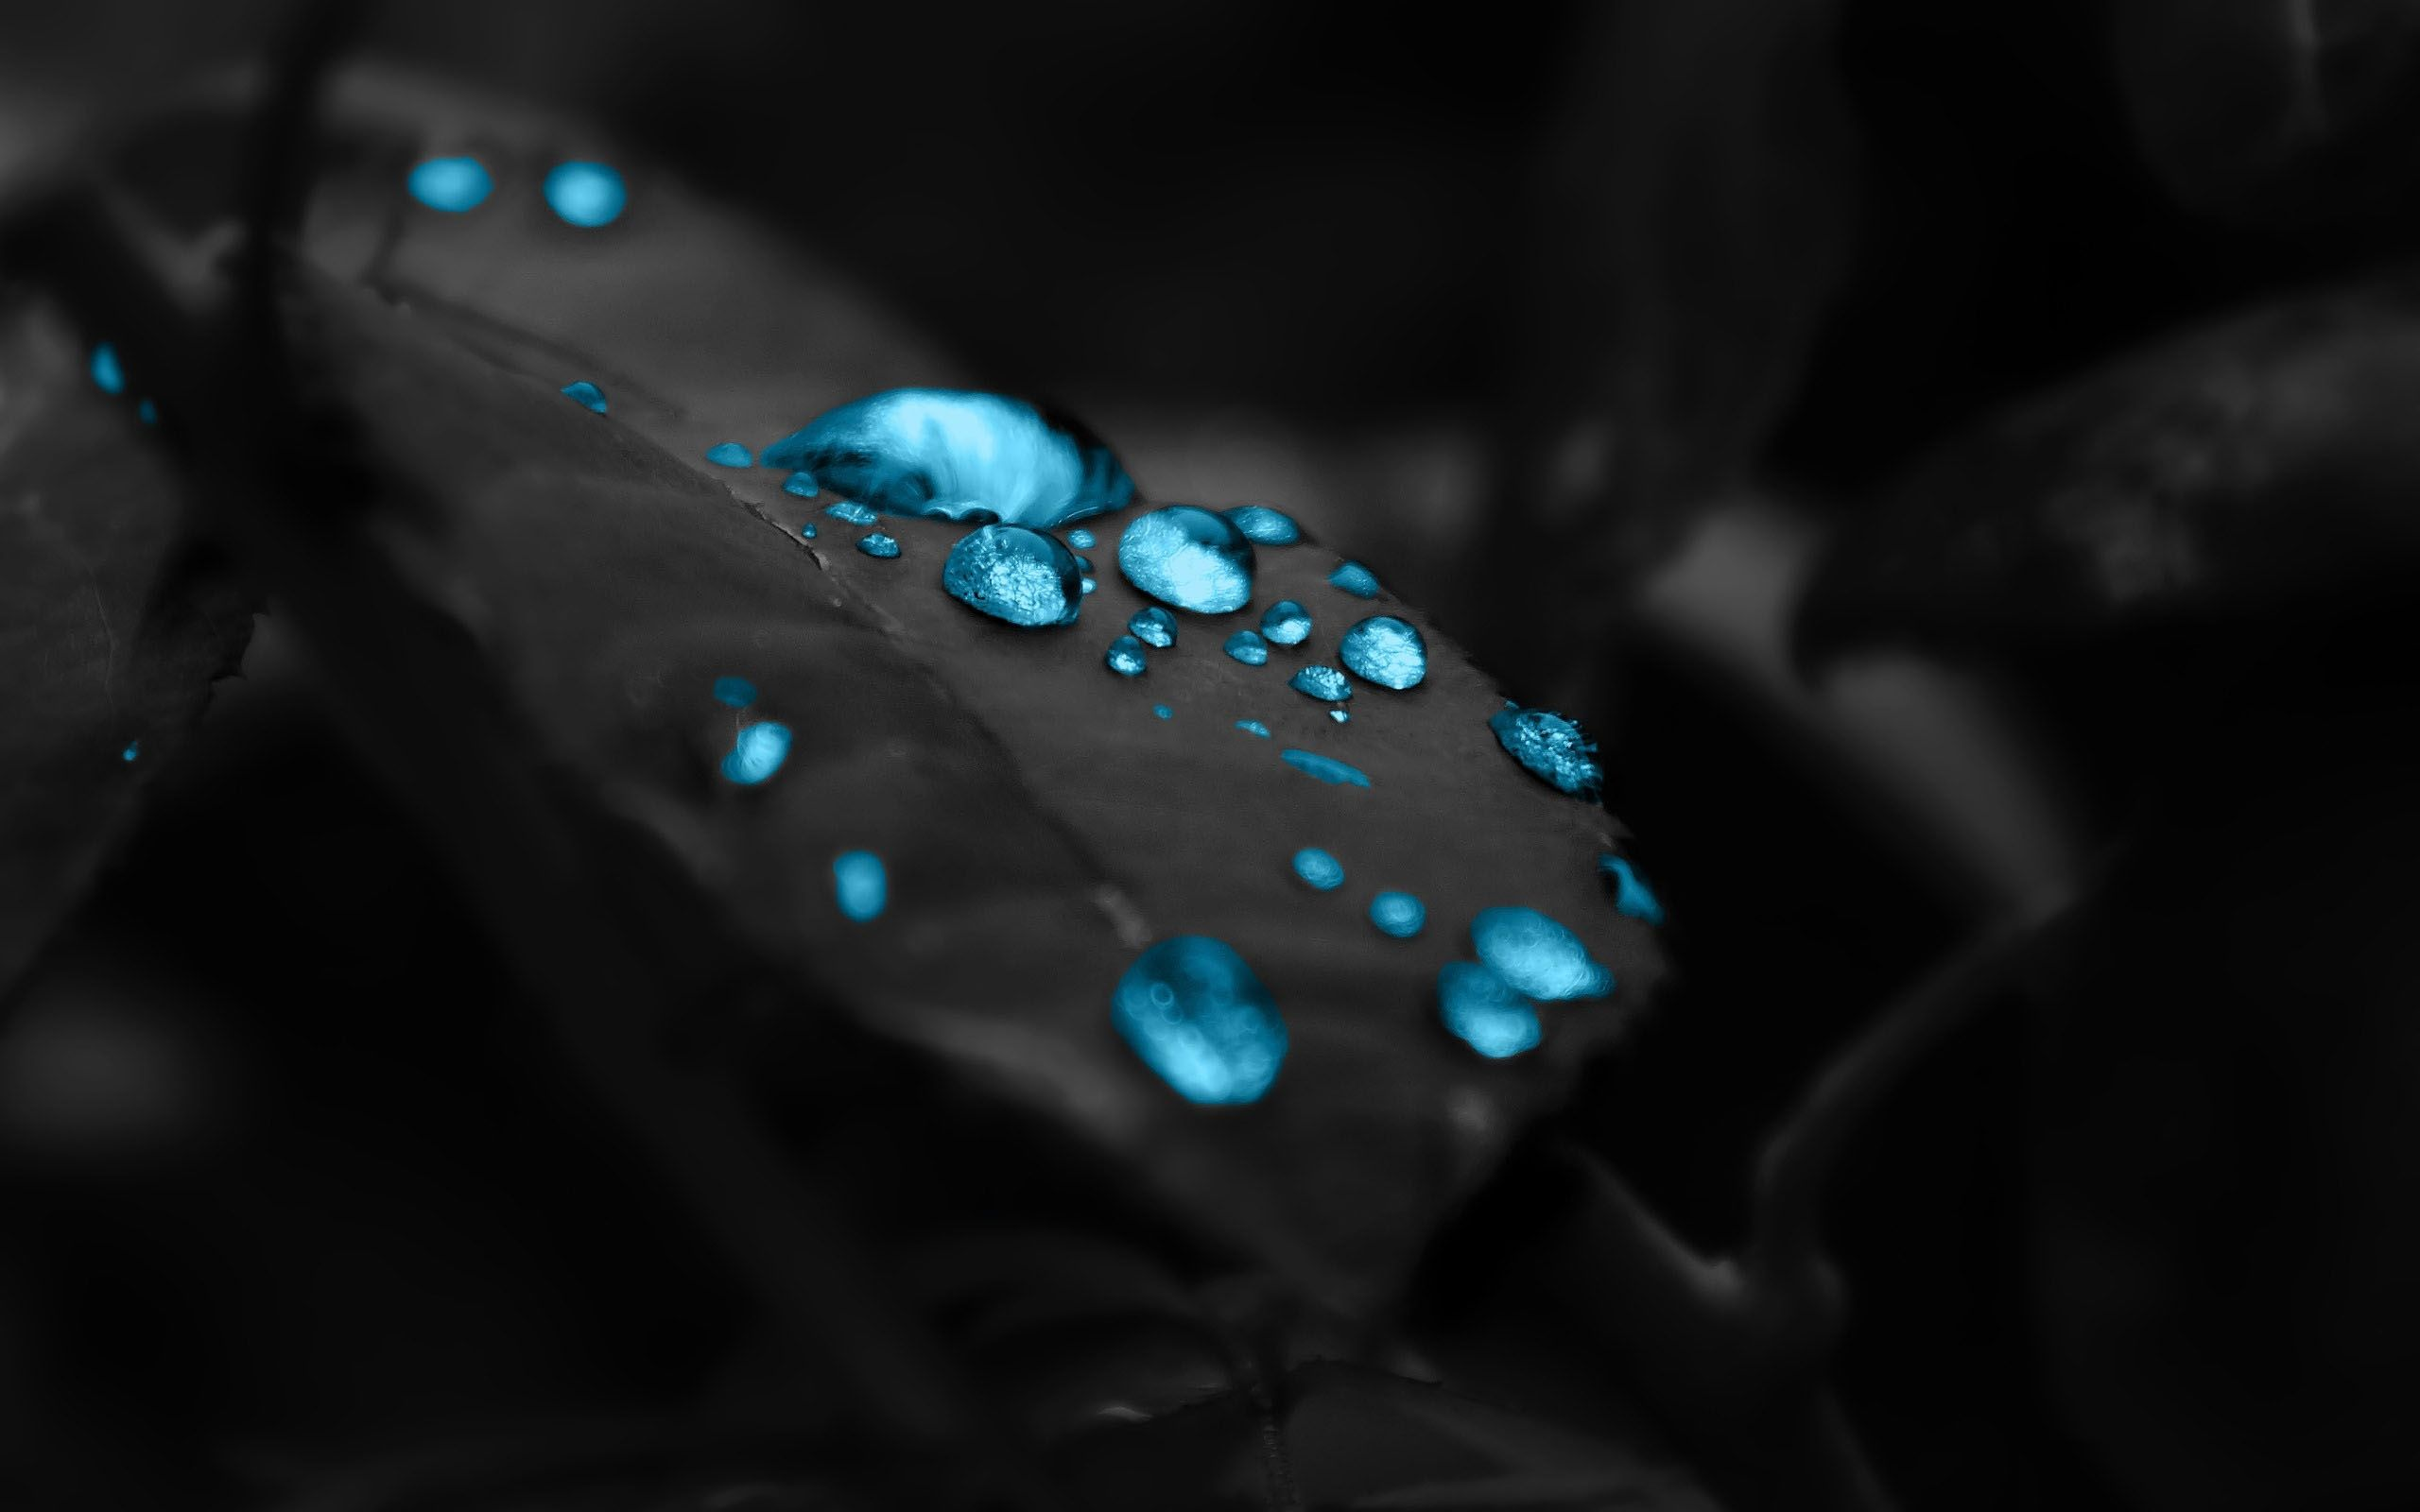 The Leaves Dew Mac Hd Wallpaper Photography Amazing Wallpapers